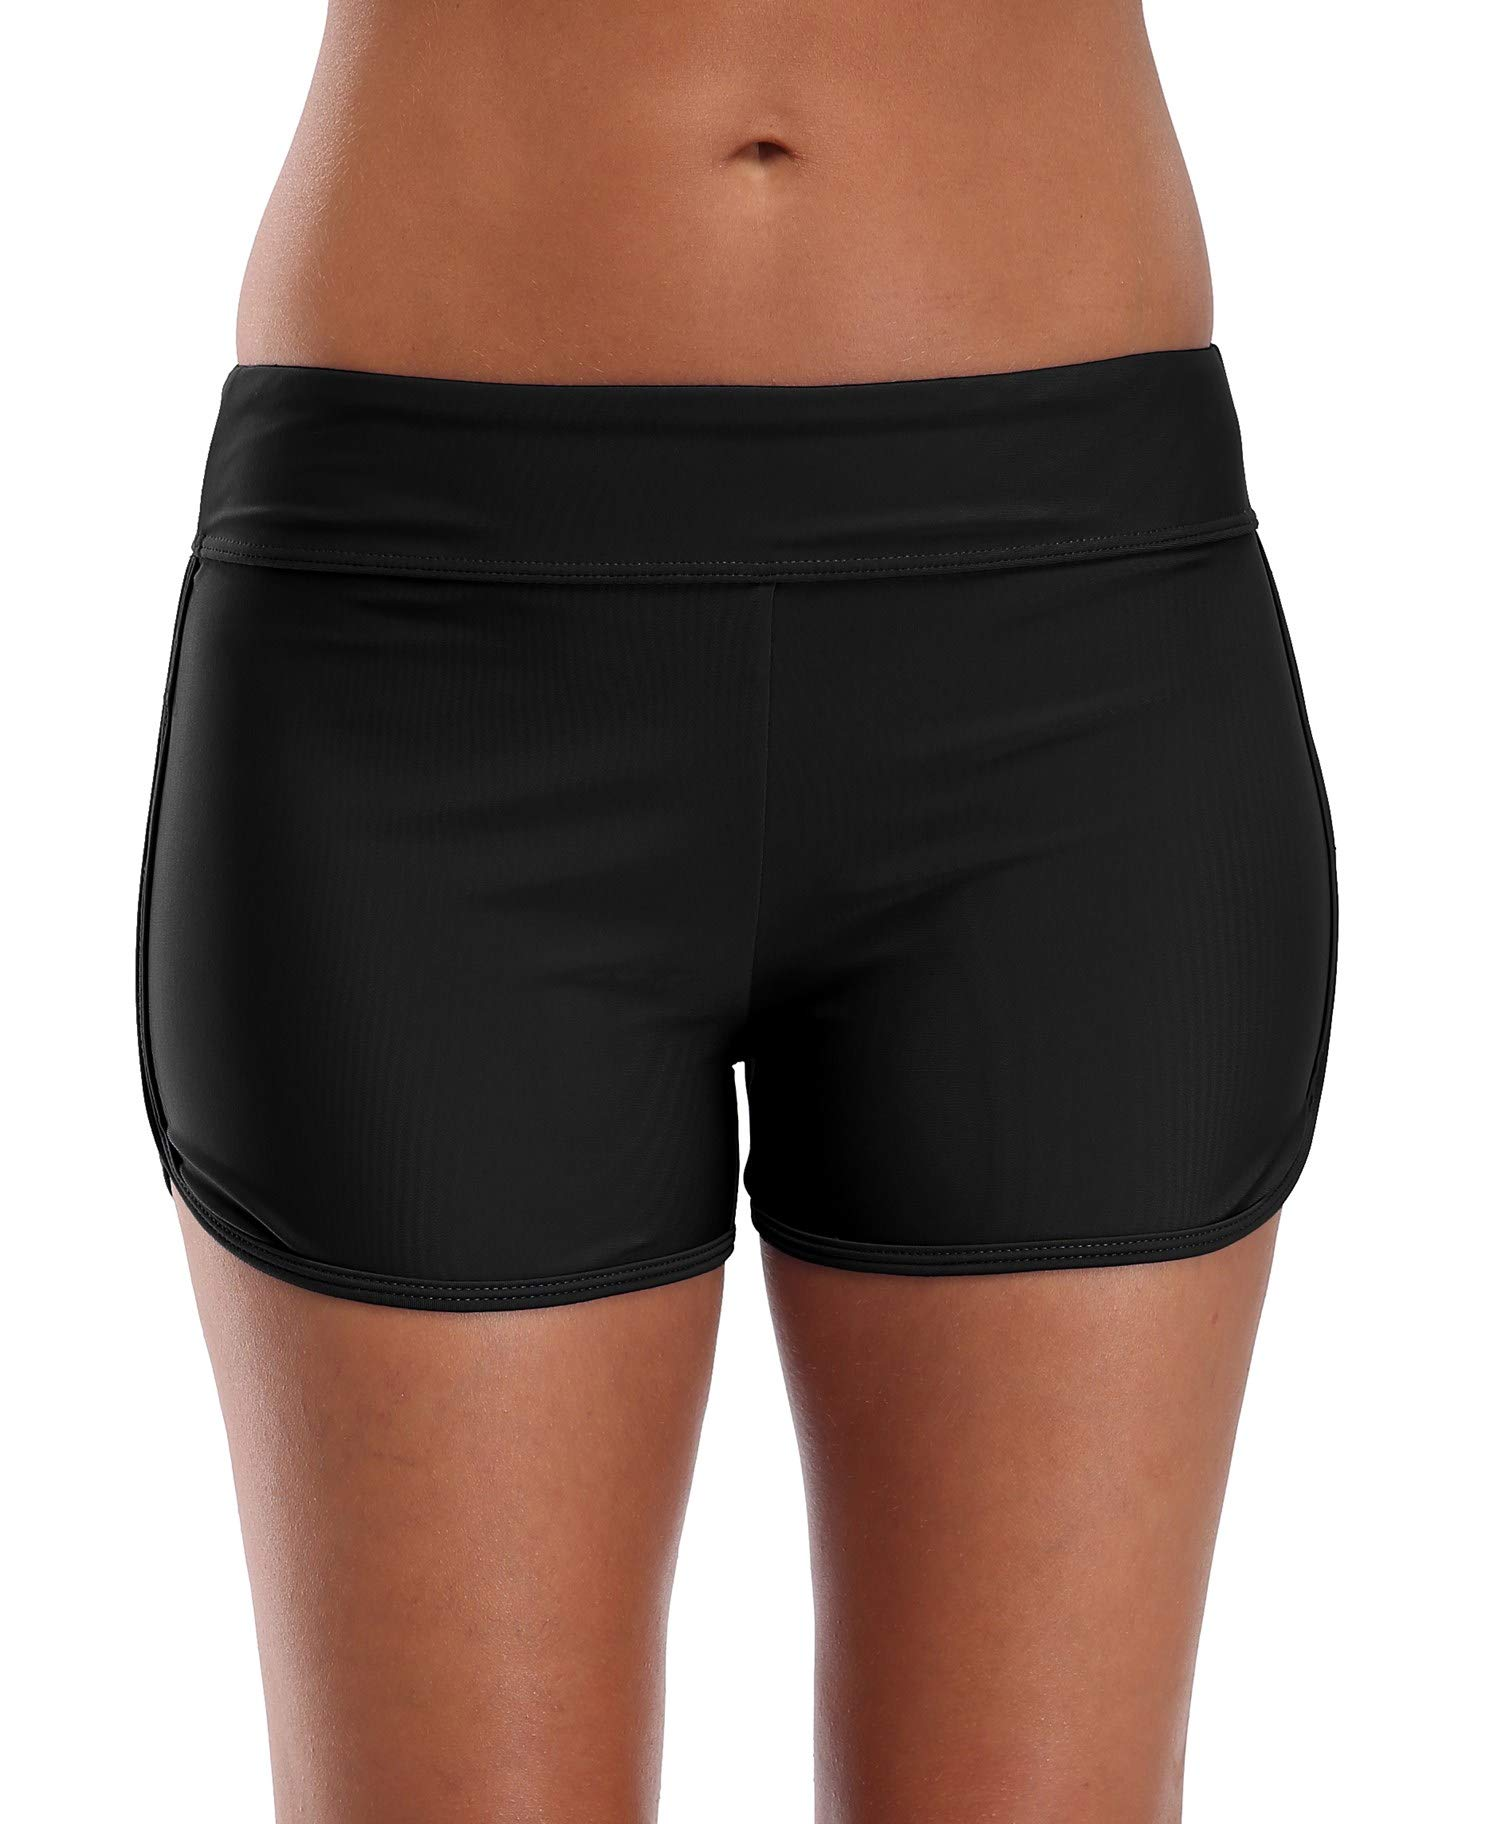 Anwell Womens Boyleg Swim Board Short Wide Waistband Swimwear Bottoms Black XXL by Anwell